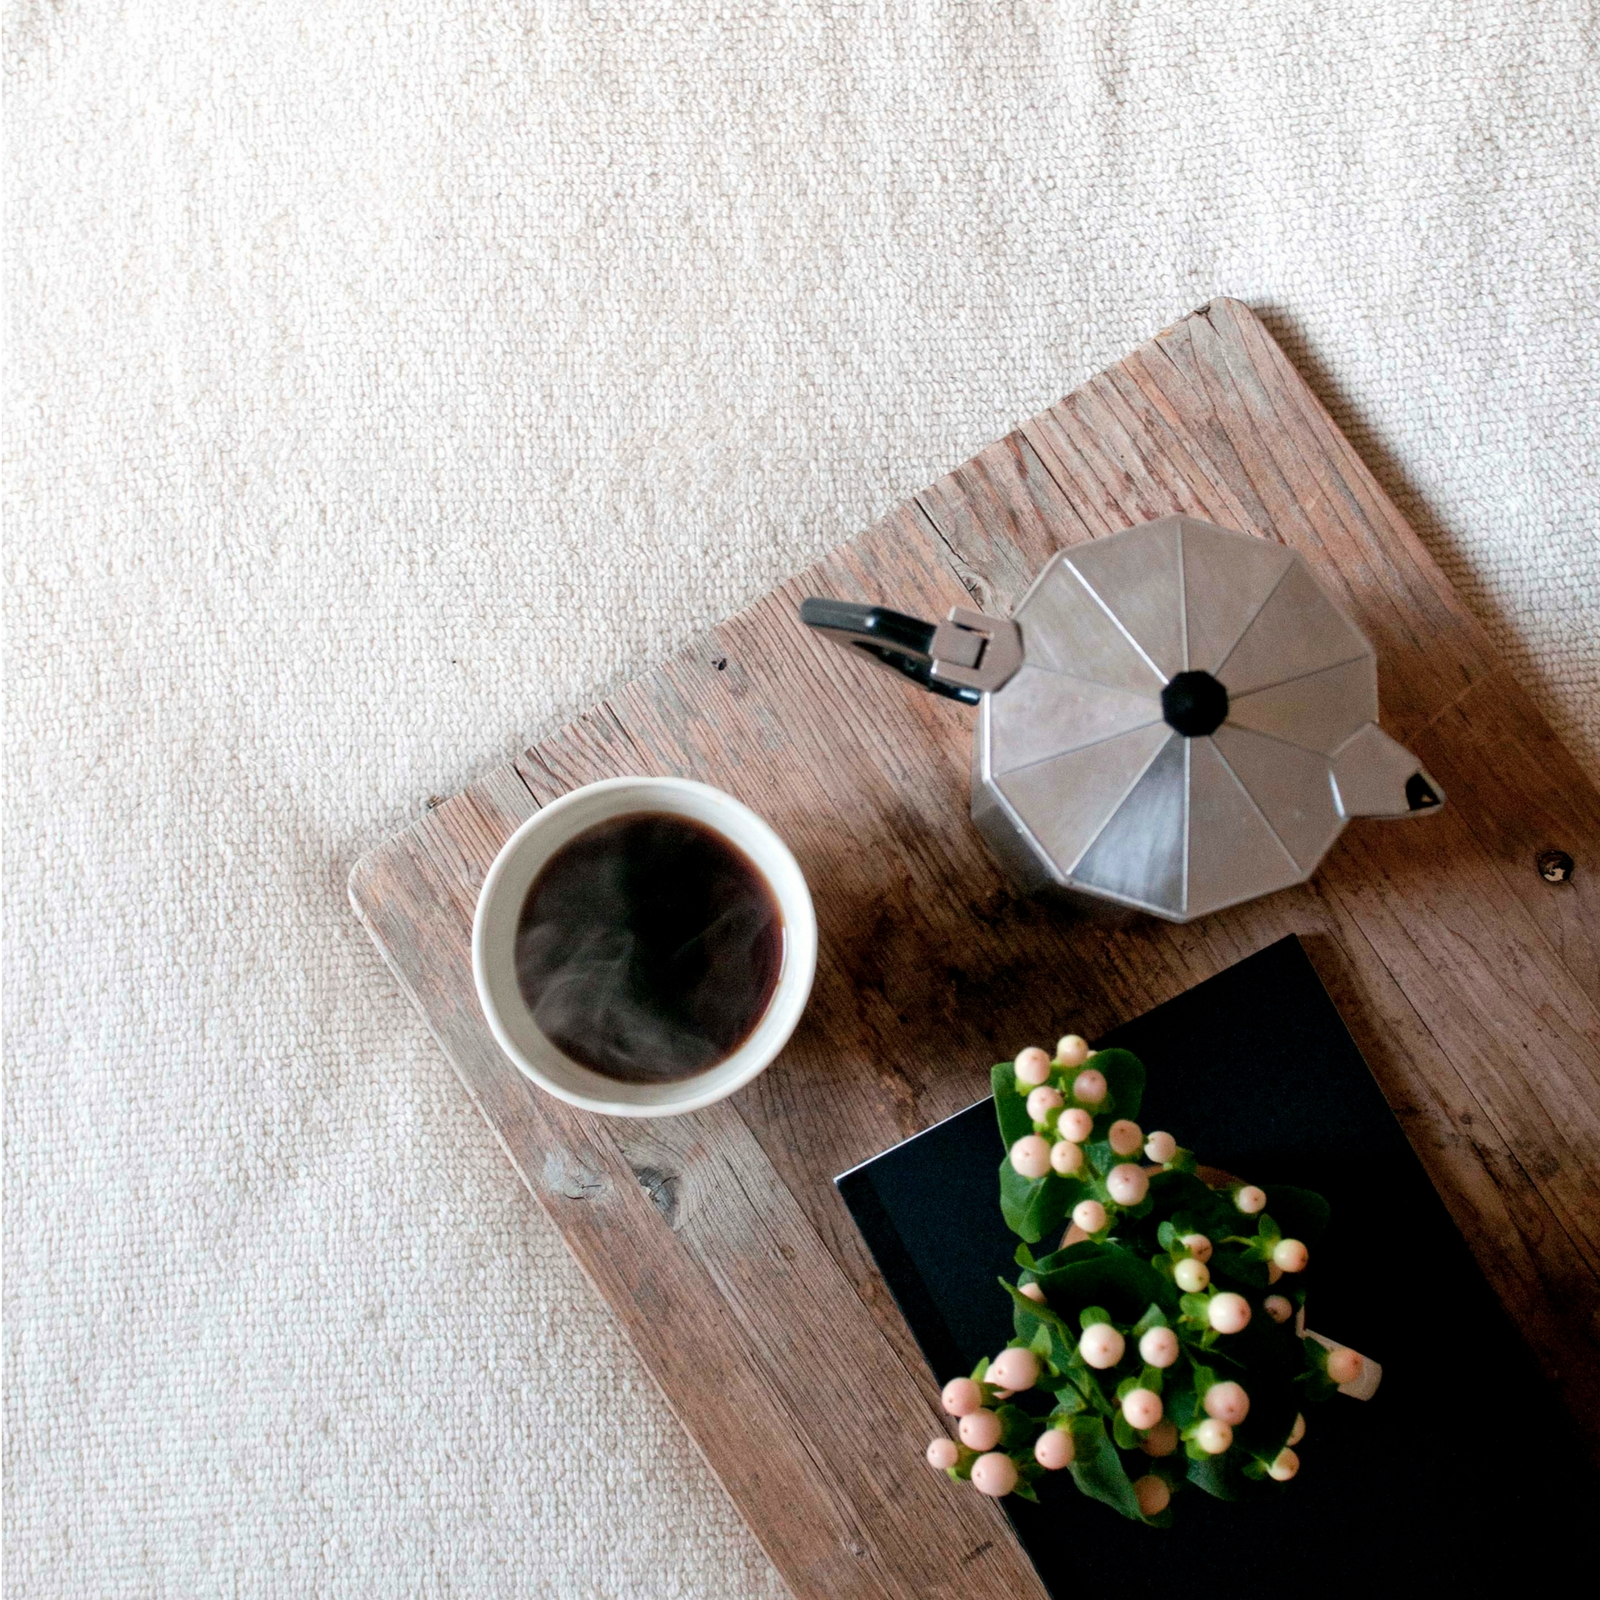 75 Home Decor Products and Houseware Products I'm Loving ...